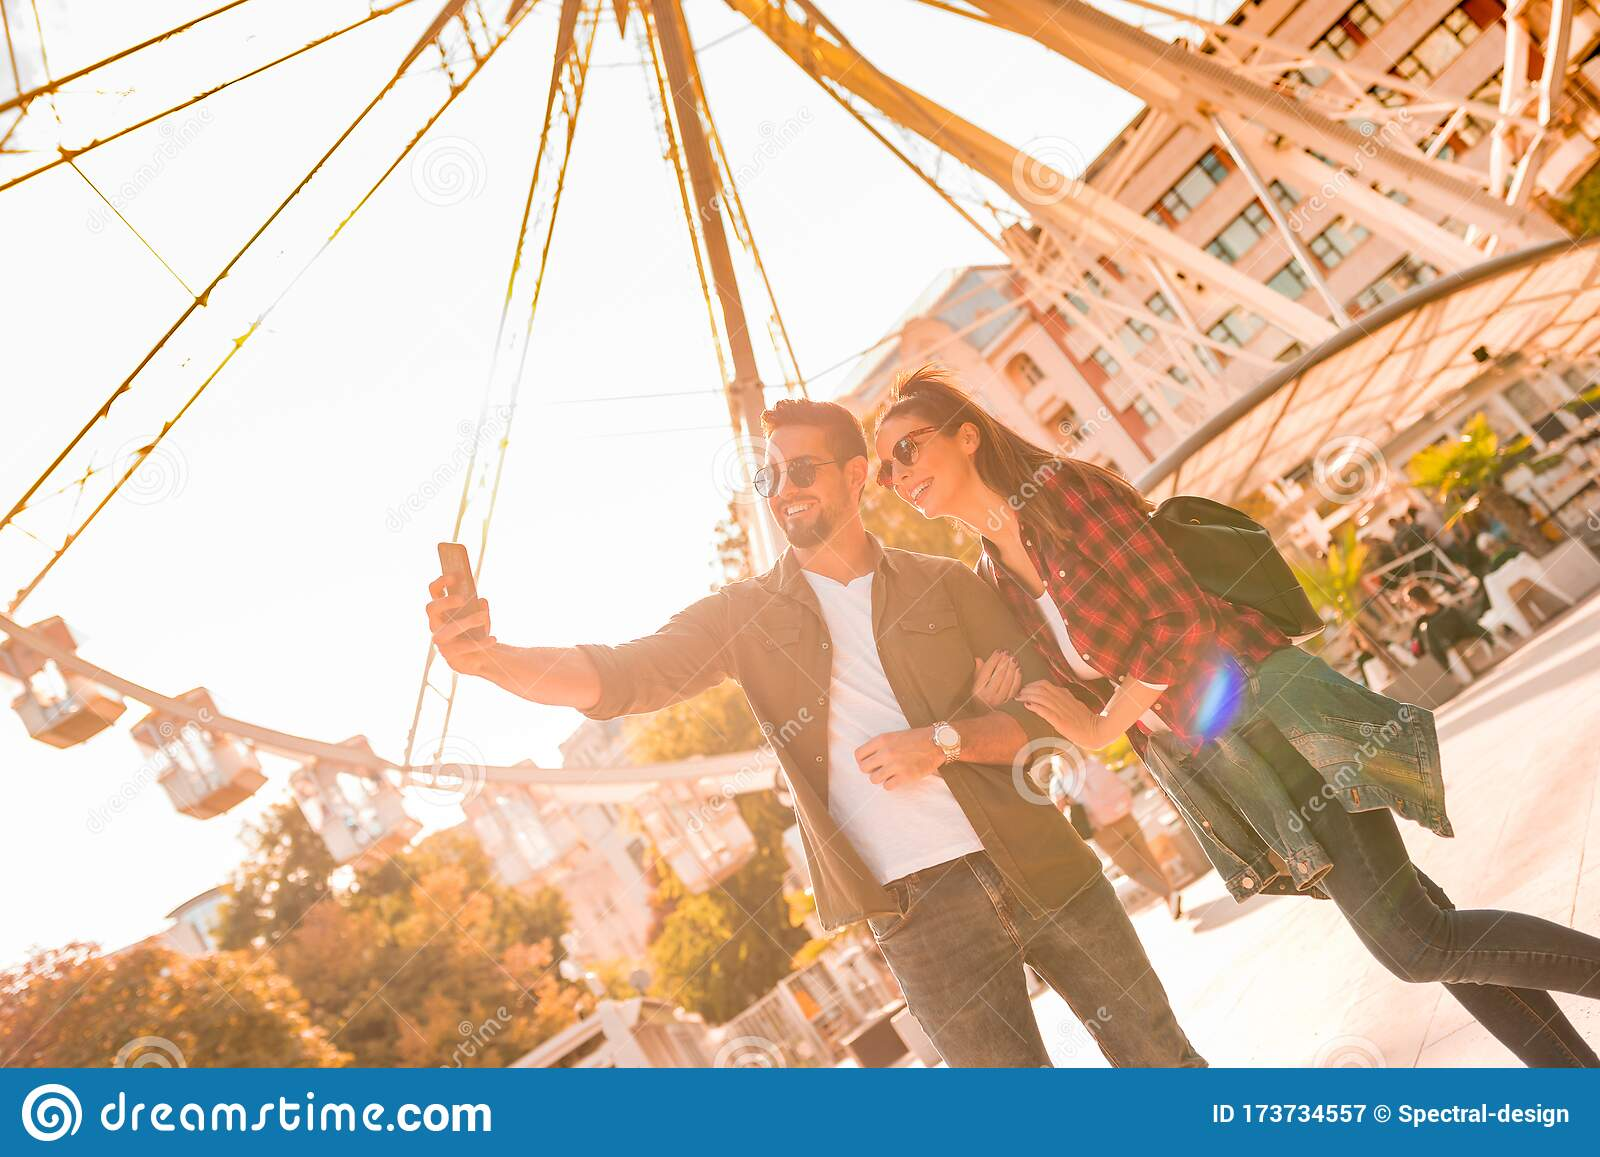 A Traveling Couple Taking A Selfie At A Ferris Wheel Stock Image Image Of Horizontal Memory 173734557